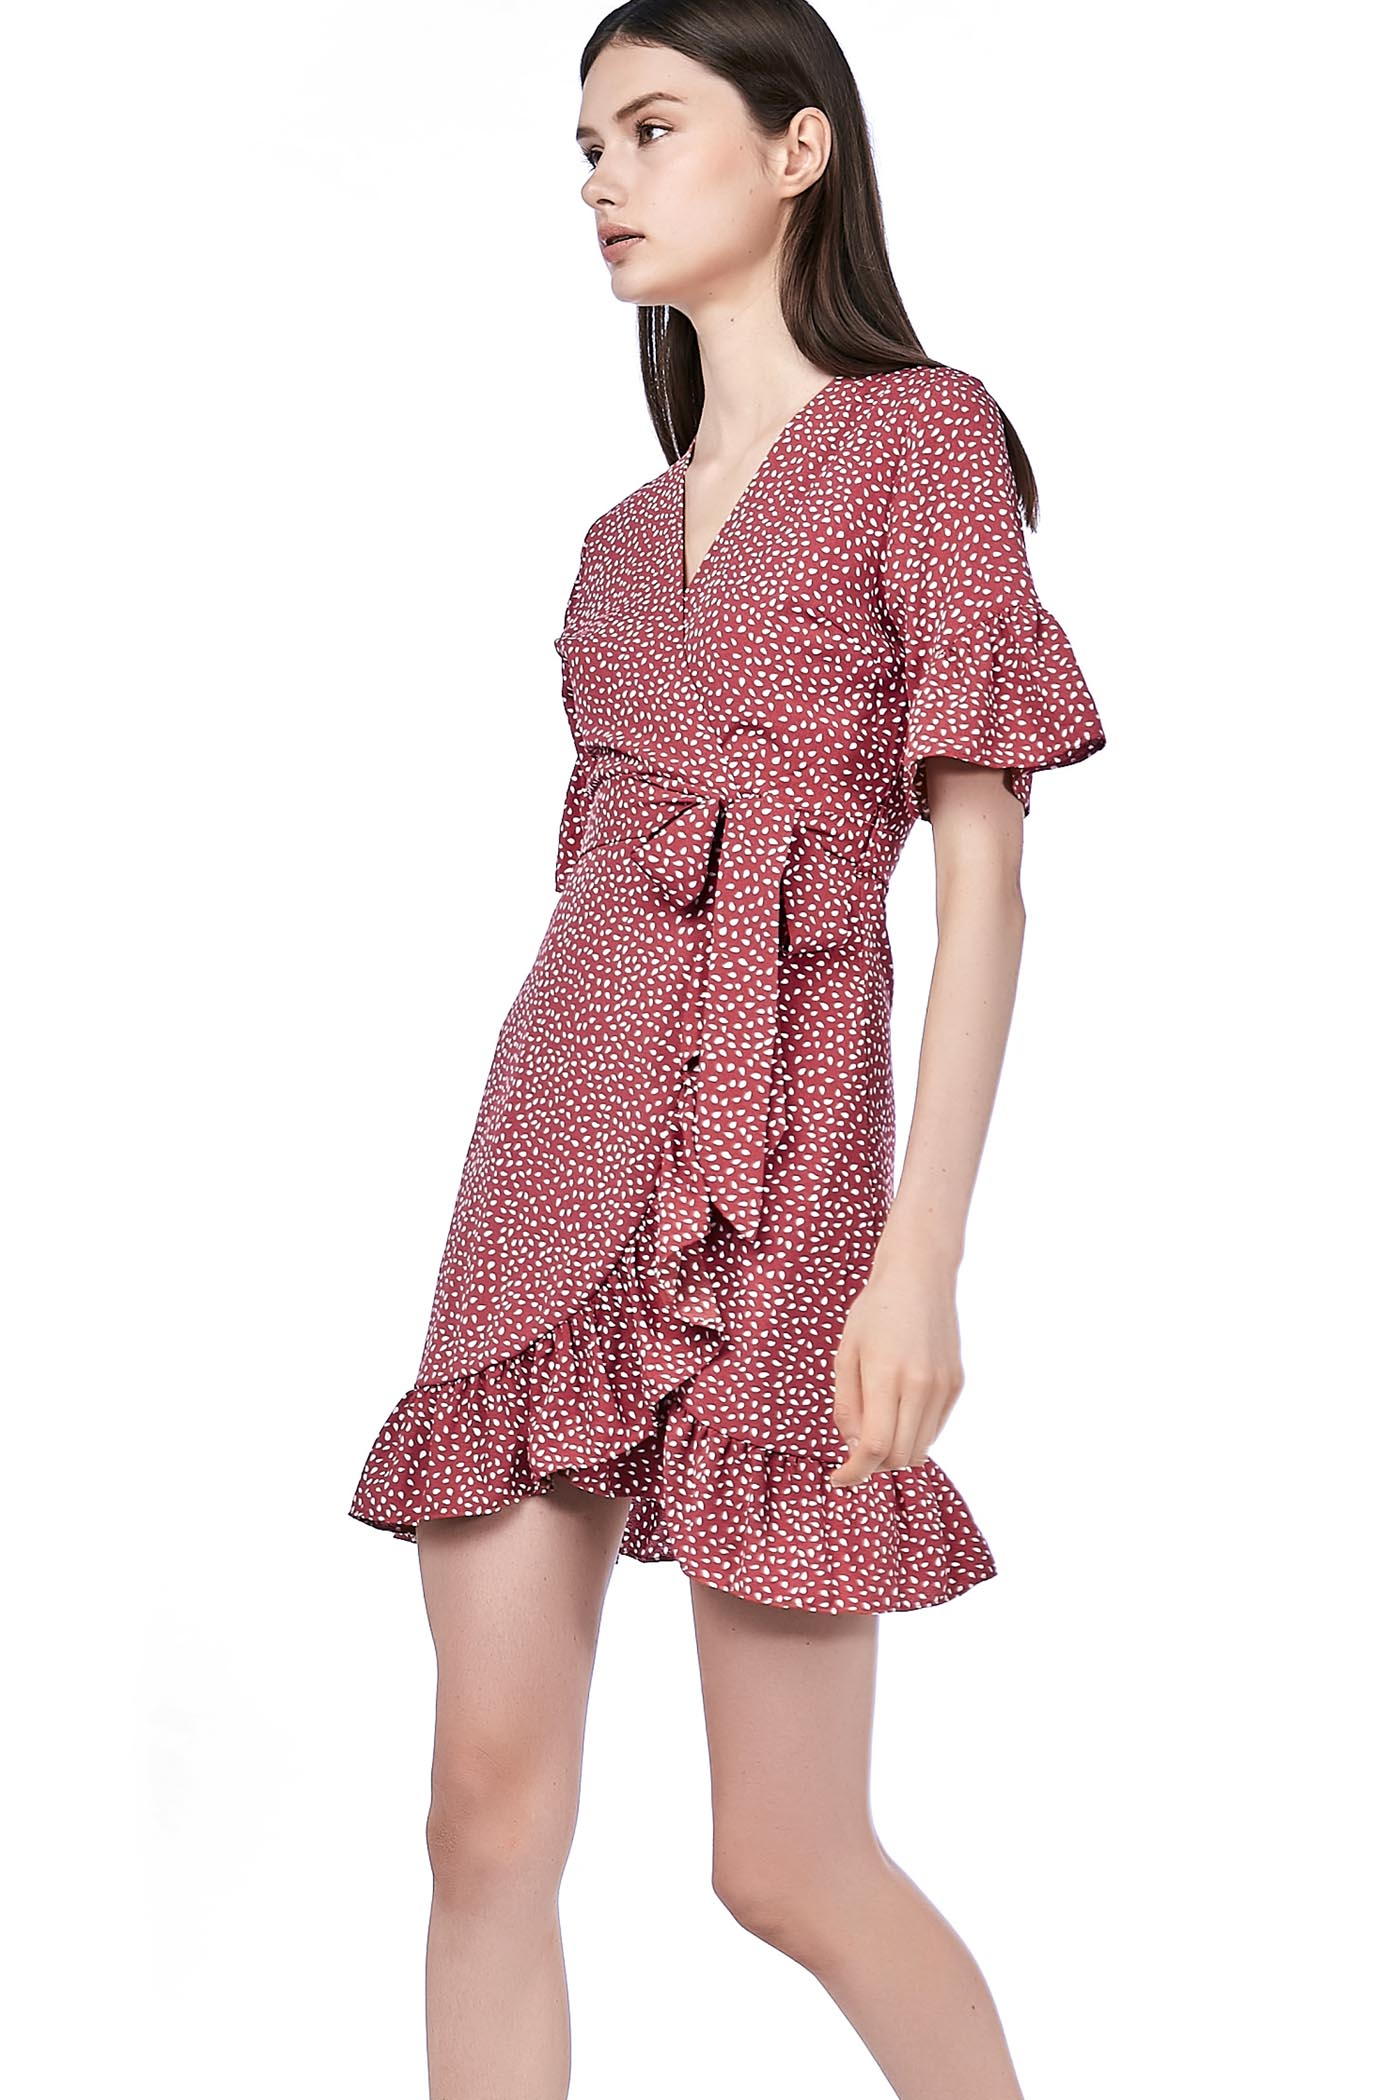 Keshi Overlap Ruffle Dress